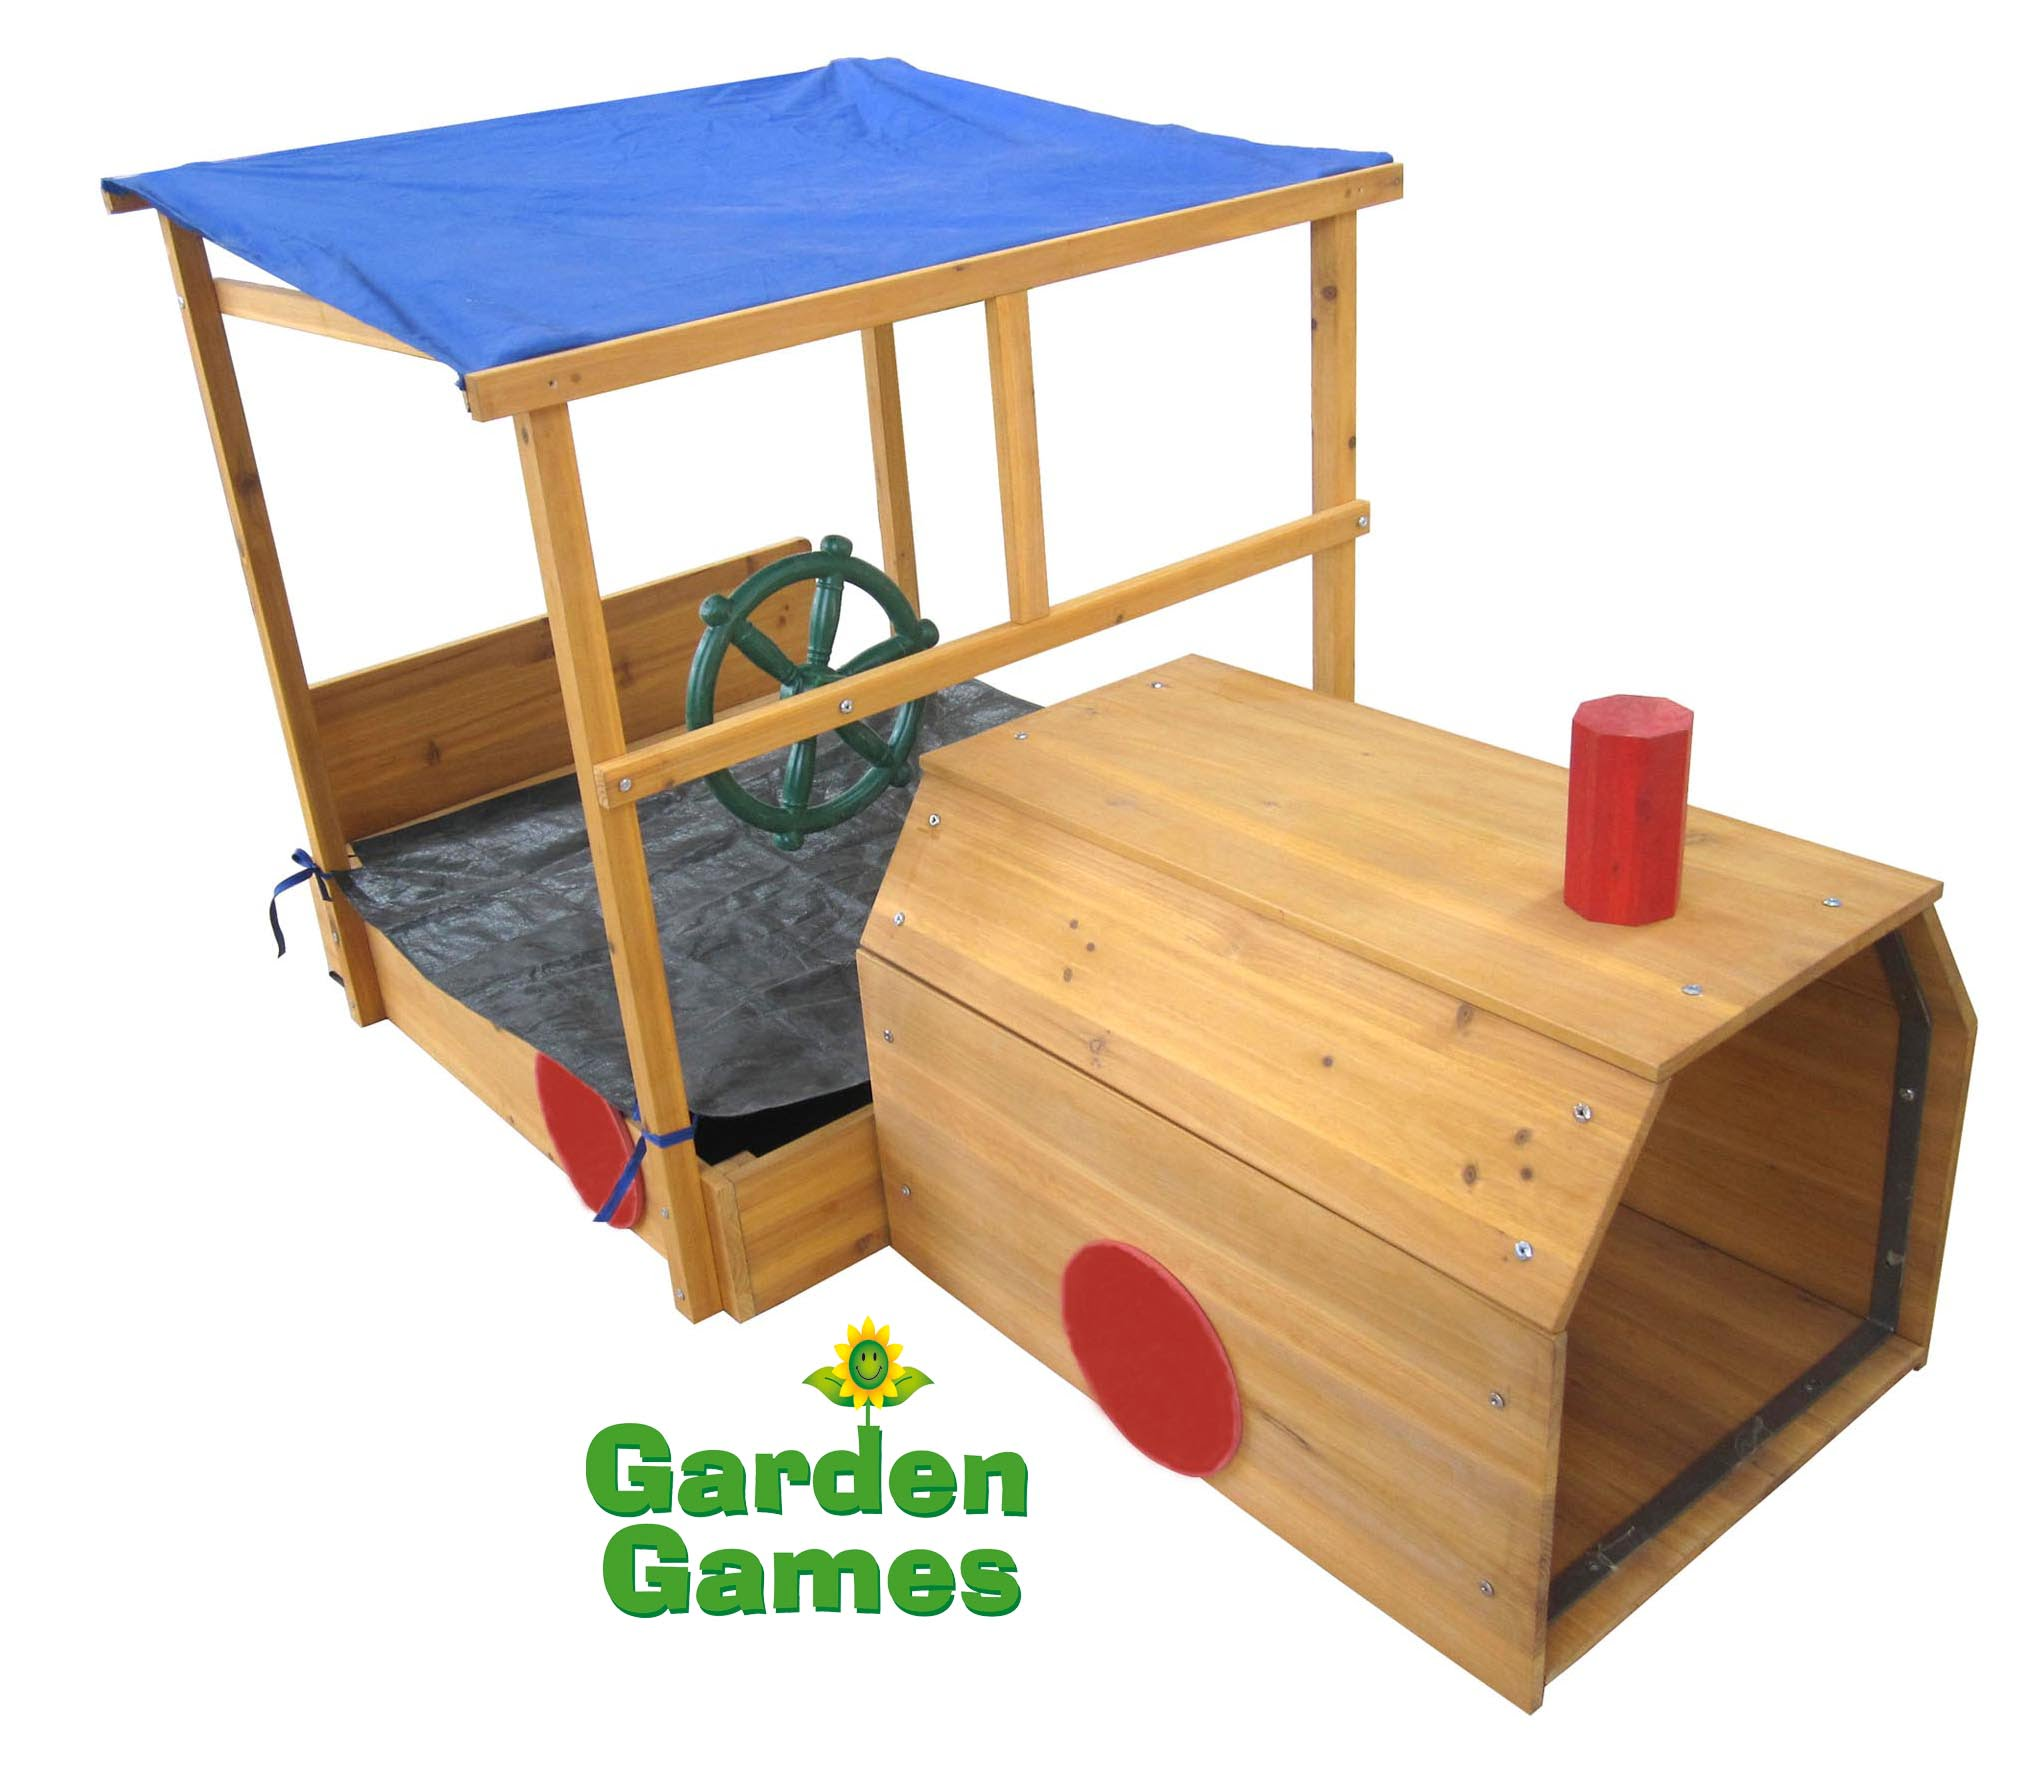 Adventure Zone Toys Garden Games Choo Choo Train Sandpit